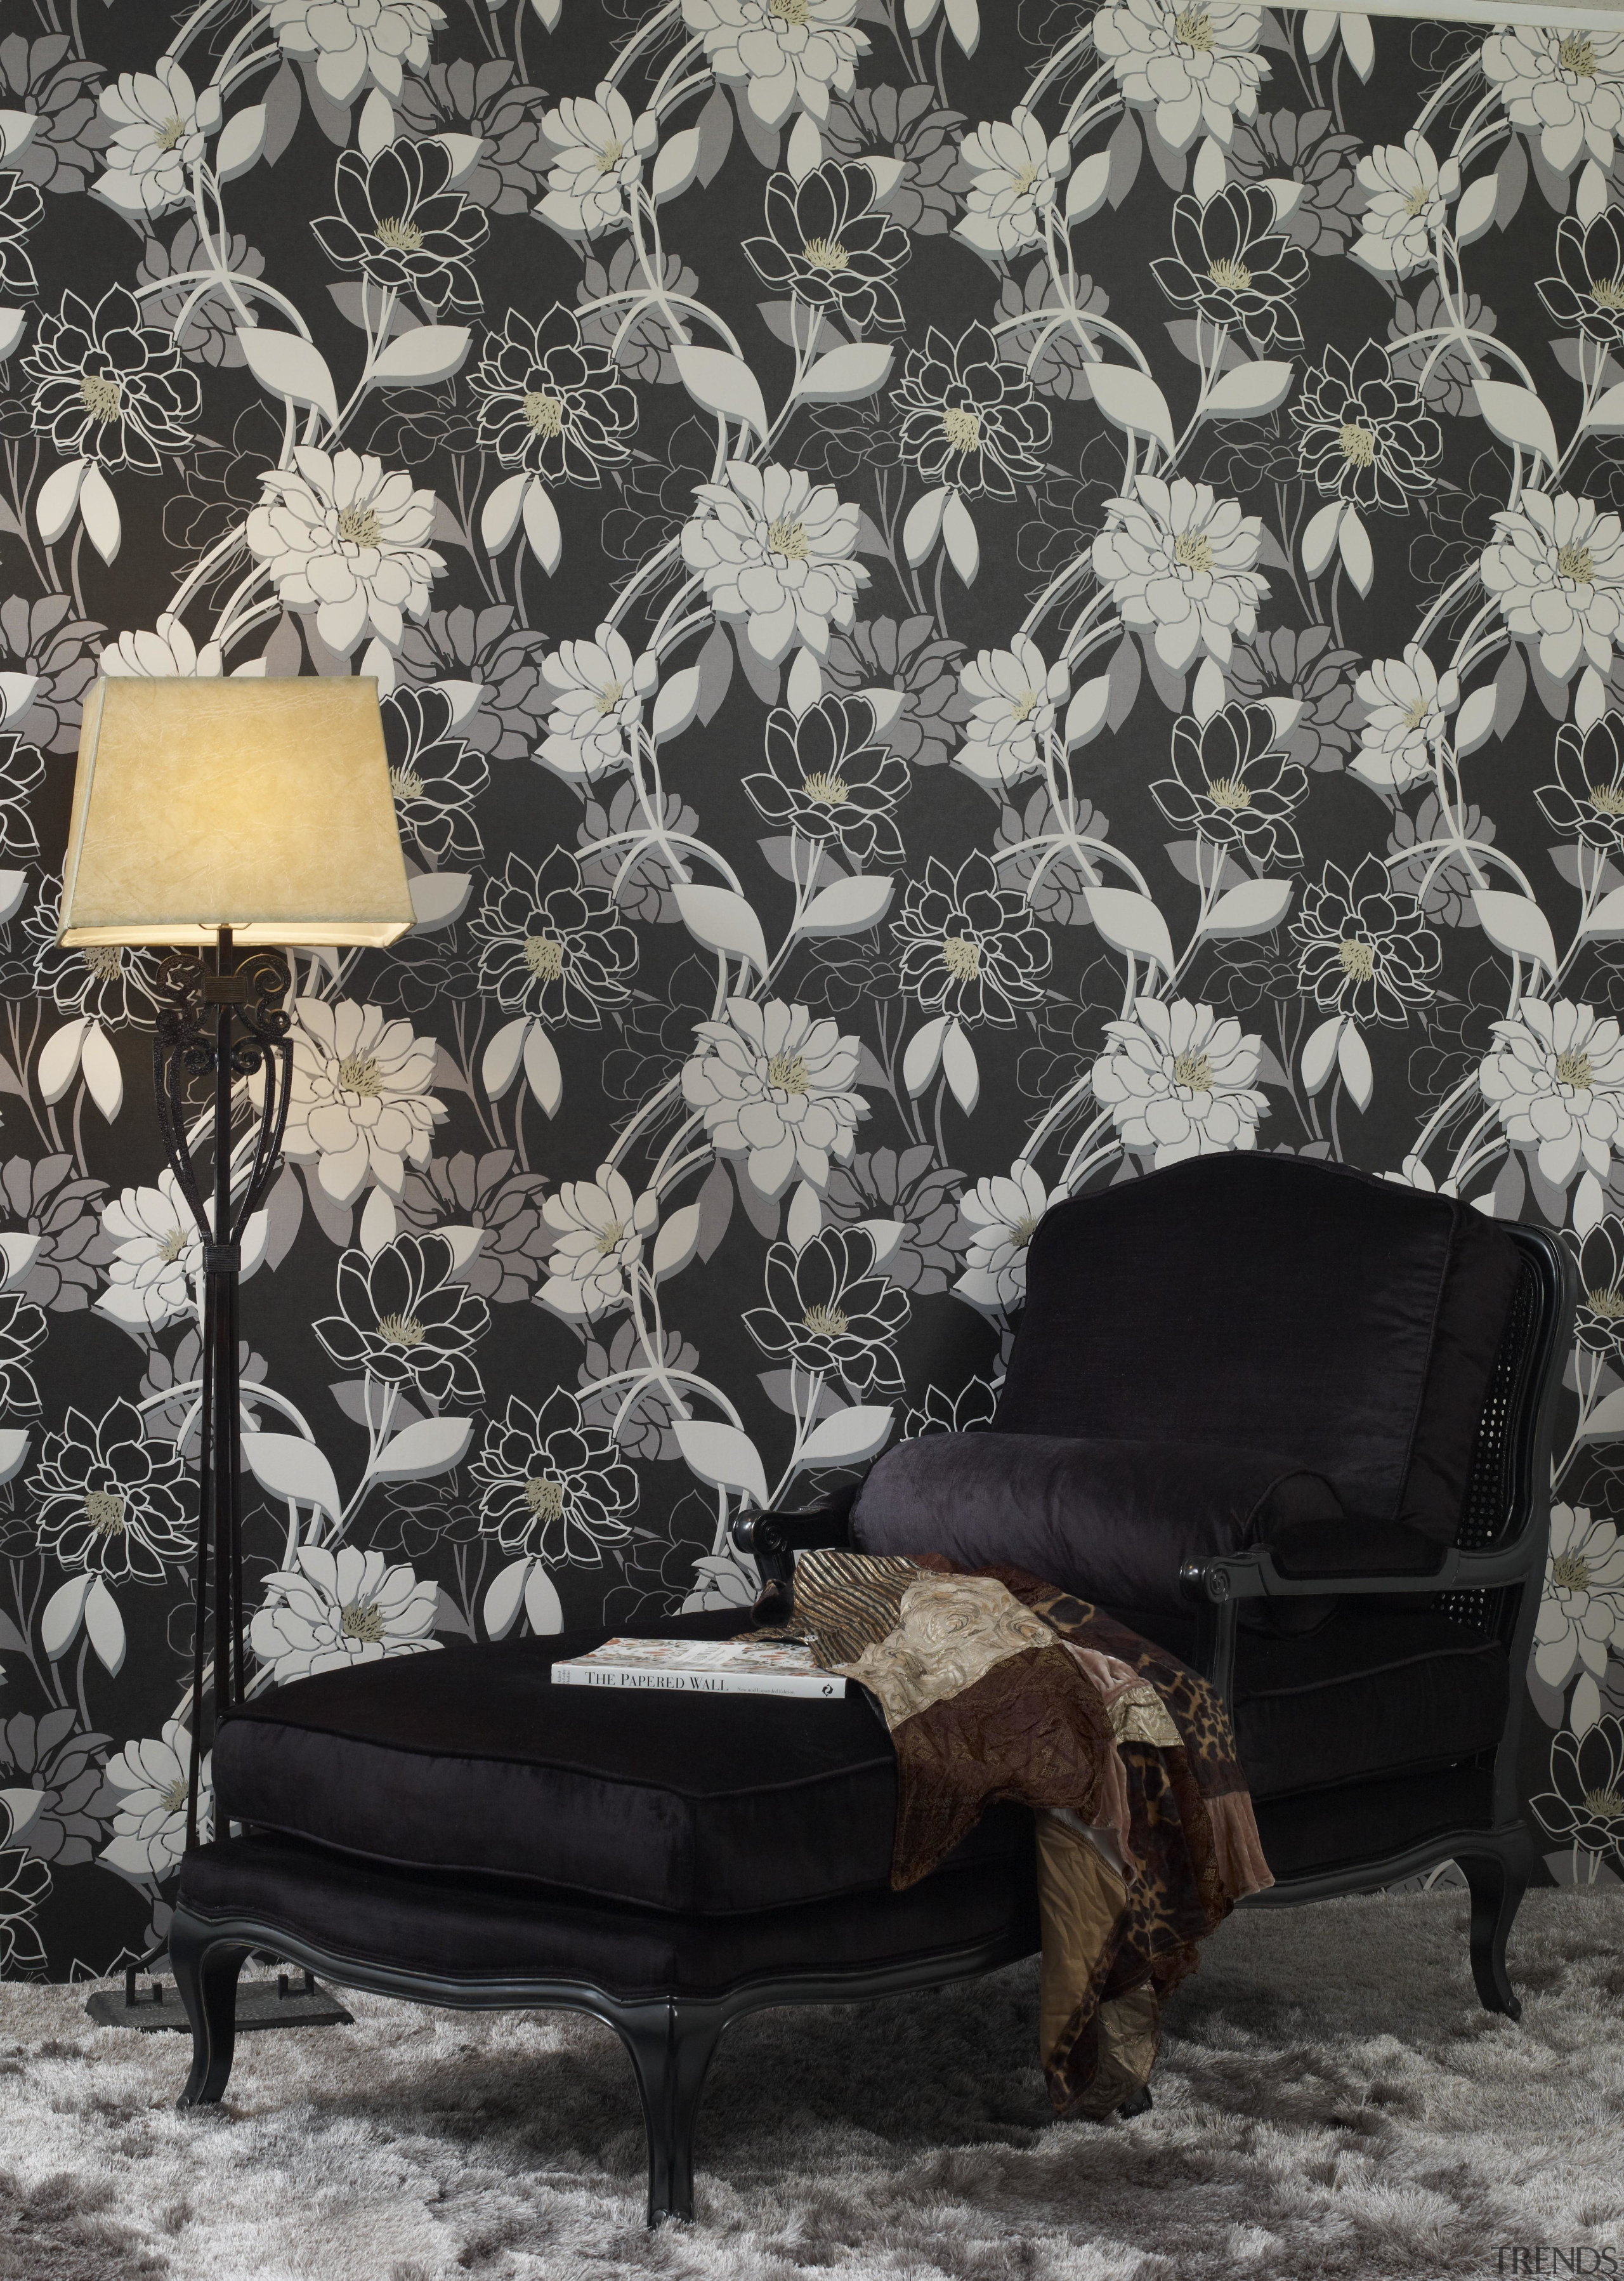 Flower Power - chair | couch | furniture chair, couch, furniture, wallpaper, black, gray